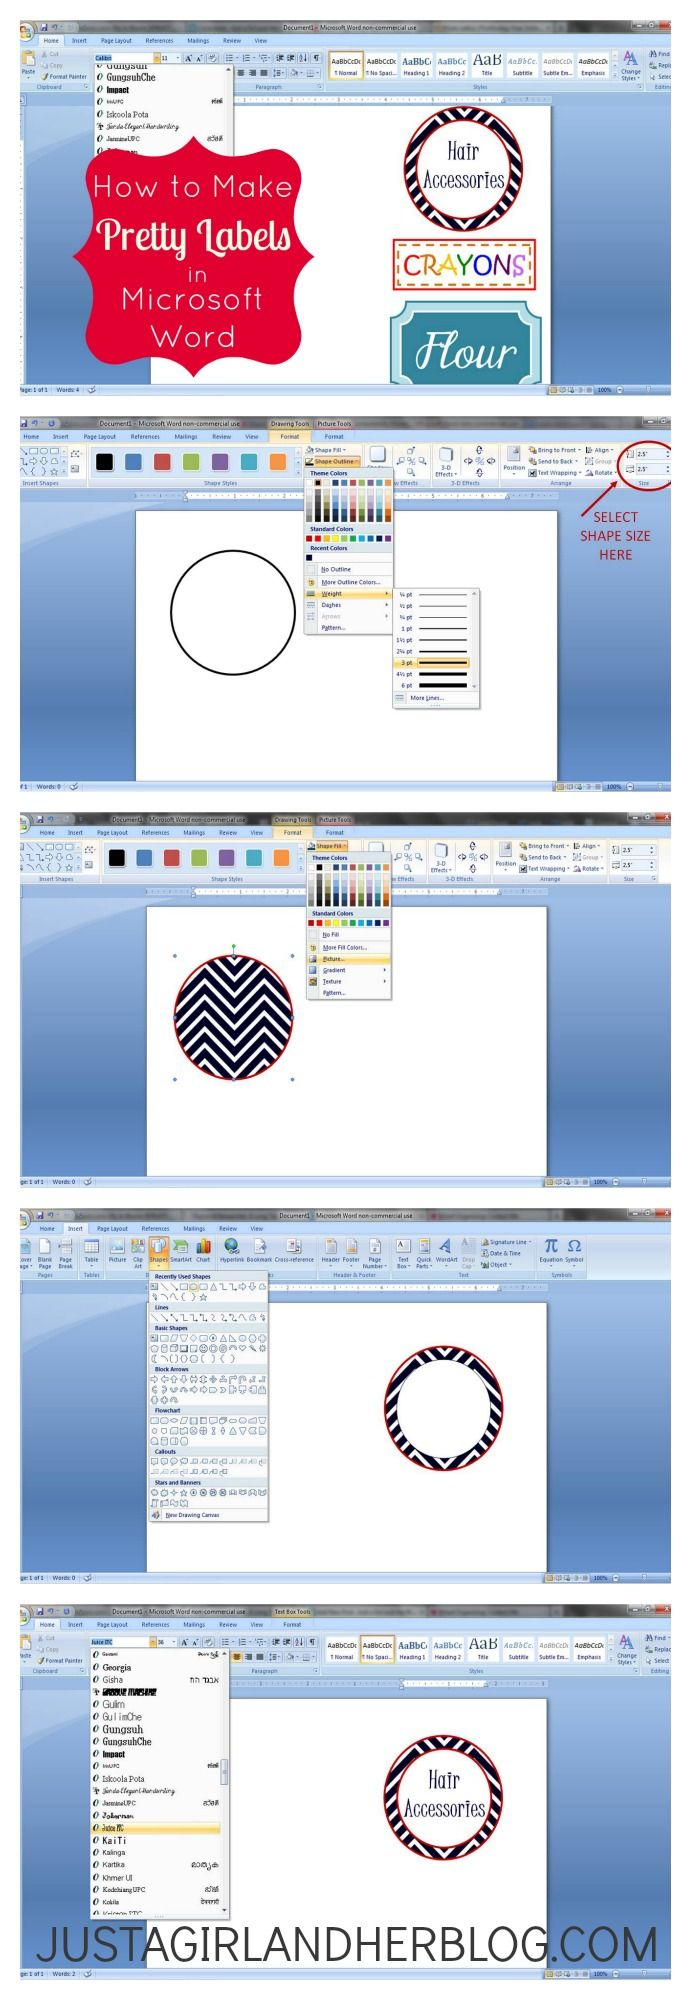 Step by Step Istructions to Make Labels in Microsoft Word... So Pretty! | JustAGirlAndHerBlog.com